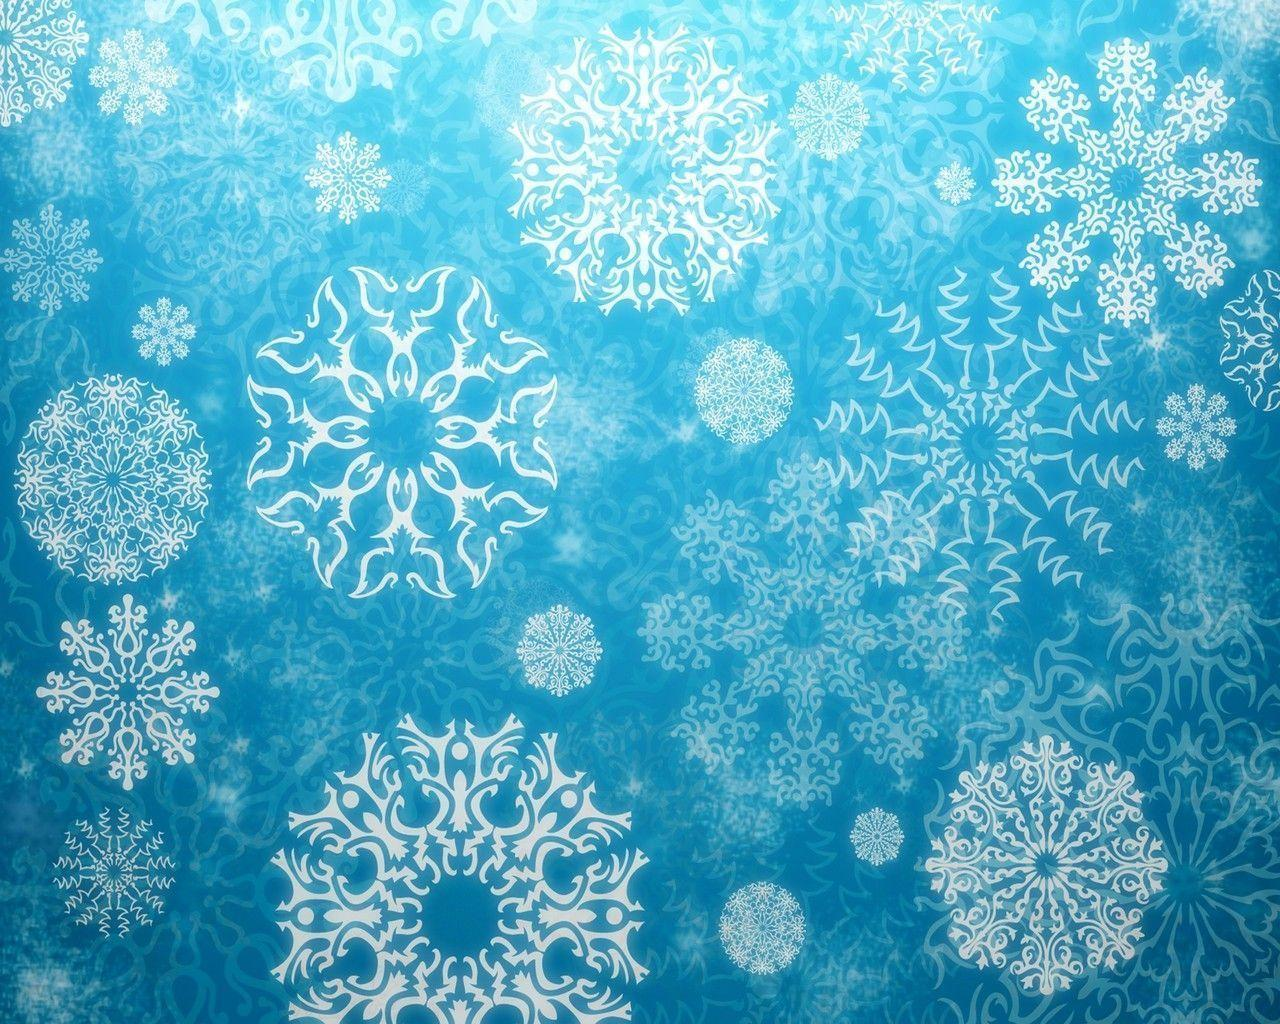 real snowflakes background - photo #21